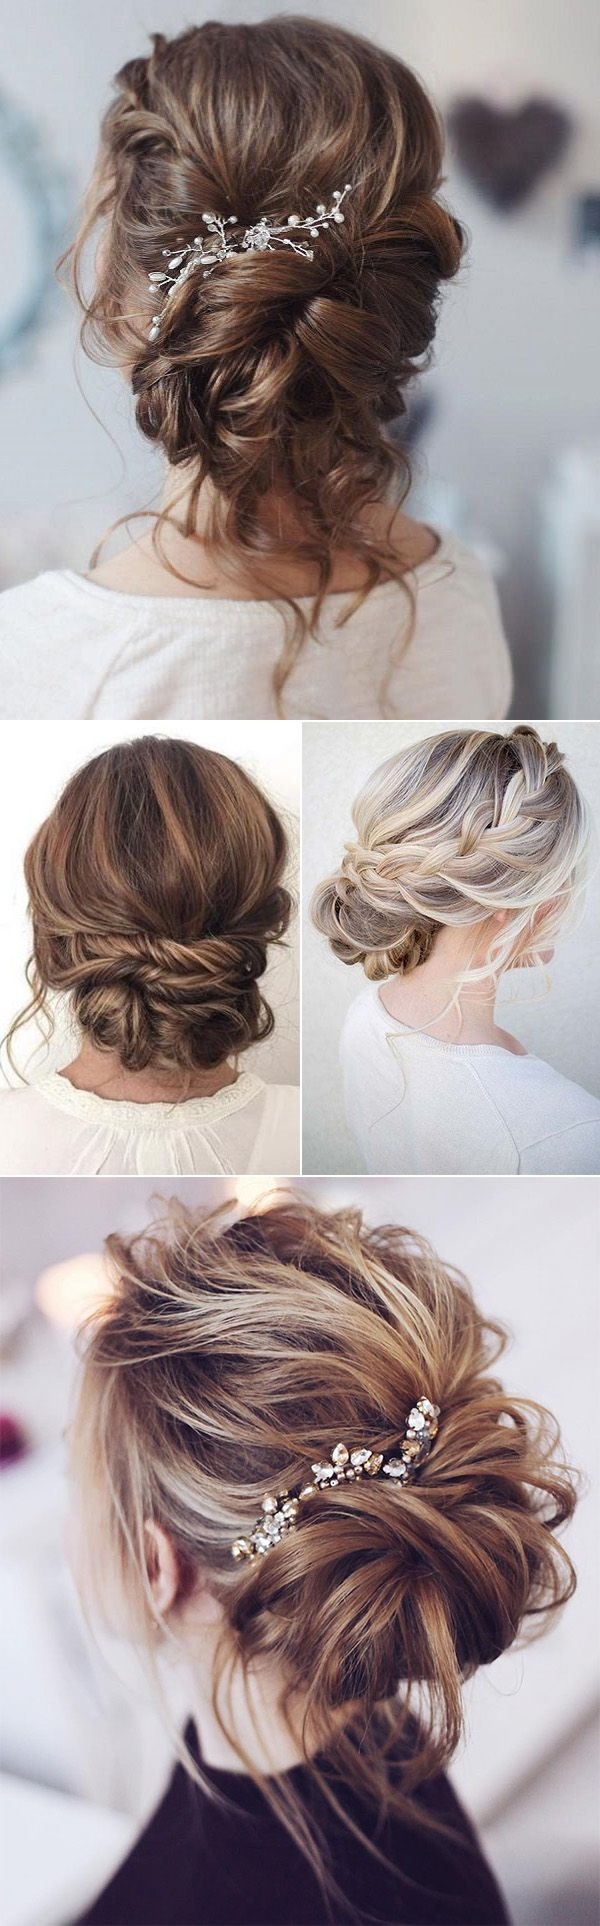 25 Drop Dead Bridal Updo Hairstyles Ideas For Any Wedding Venues Bridal Hair Updo Trendy Wedding Hairstyles Wedding Hairstyles With Veil